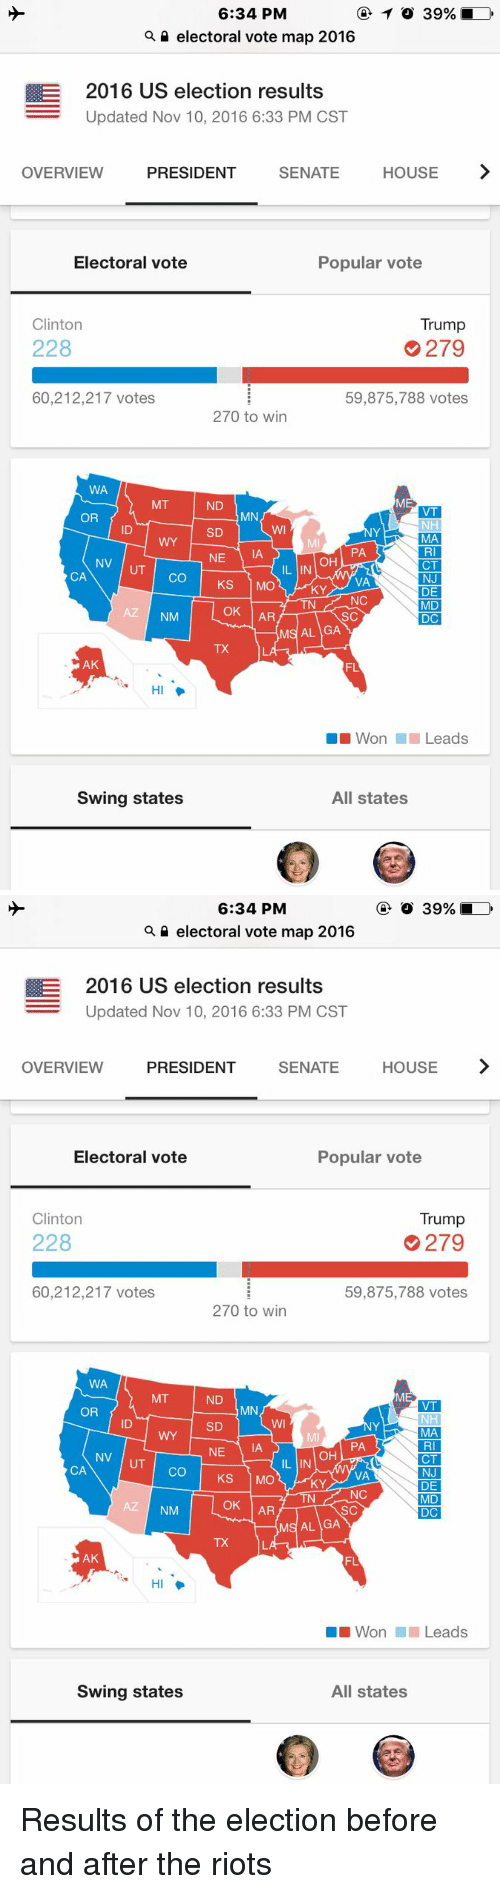 Trump Clinton: 6:34 PM  TO 39%  electoral vote map 2016  E 2016 US election results  Updated Nov 10, 2016 6:33 PM CST  OVERVIEW  PRESIDENT  SENATE  HOUSE  Electoral vote  Popular vote  Clinton  Trump  228  279  60,212,217 votes.  59,875,788 votes.  270 to win  WA  MT  ND  VT  MN  OR  NHI  SD  MA  PA  L NE  IAA  OH  NV  CT  UT  CA  CO  KS  MO  NJ  VA  KY  DE  NC  MD  OK  AR  AZ  NM  SC  DC  MS AL GA  AK  FL  HI  Won Leads  Swing states  All states   6:34 PM  electoral vote map 2016  E 2016 US election results  Updated Nov 10, 2016 6:33 PM CST  OVERVIEW  PRESIDENT  SENATE  HOUSE  Electoral vote  Popular vote  Trump  Clinton  228  279  60,212,217 votes  59,875,788 votes  270 to win  WA  MT  ND  VT  MN  OR  NH  SD  MA  PA  NE  IA  OH  NV  CT  IL IN  CA  CO  1 MO  KS  NJ  VA  KY  DE  NC  TN  MD  OK  AR  NM  SC  DC  MS AL GA  AK  FL  Won Leads  Swing states  All states Results of the election before and after the riots